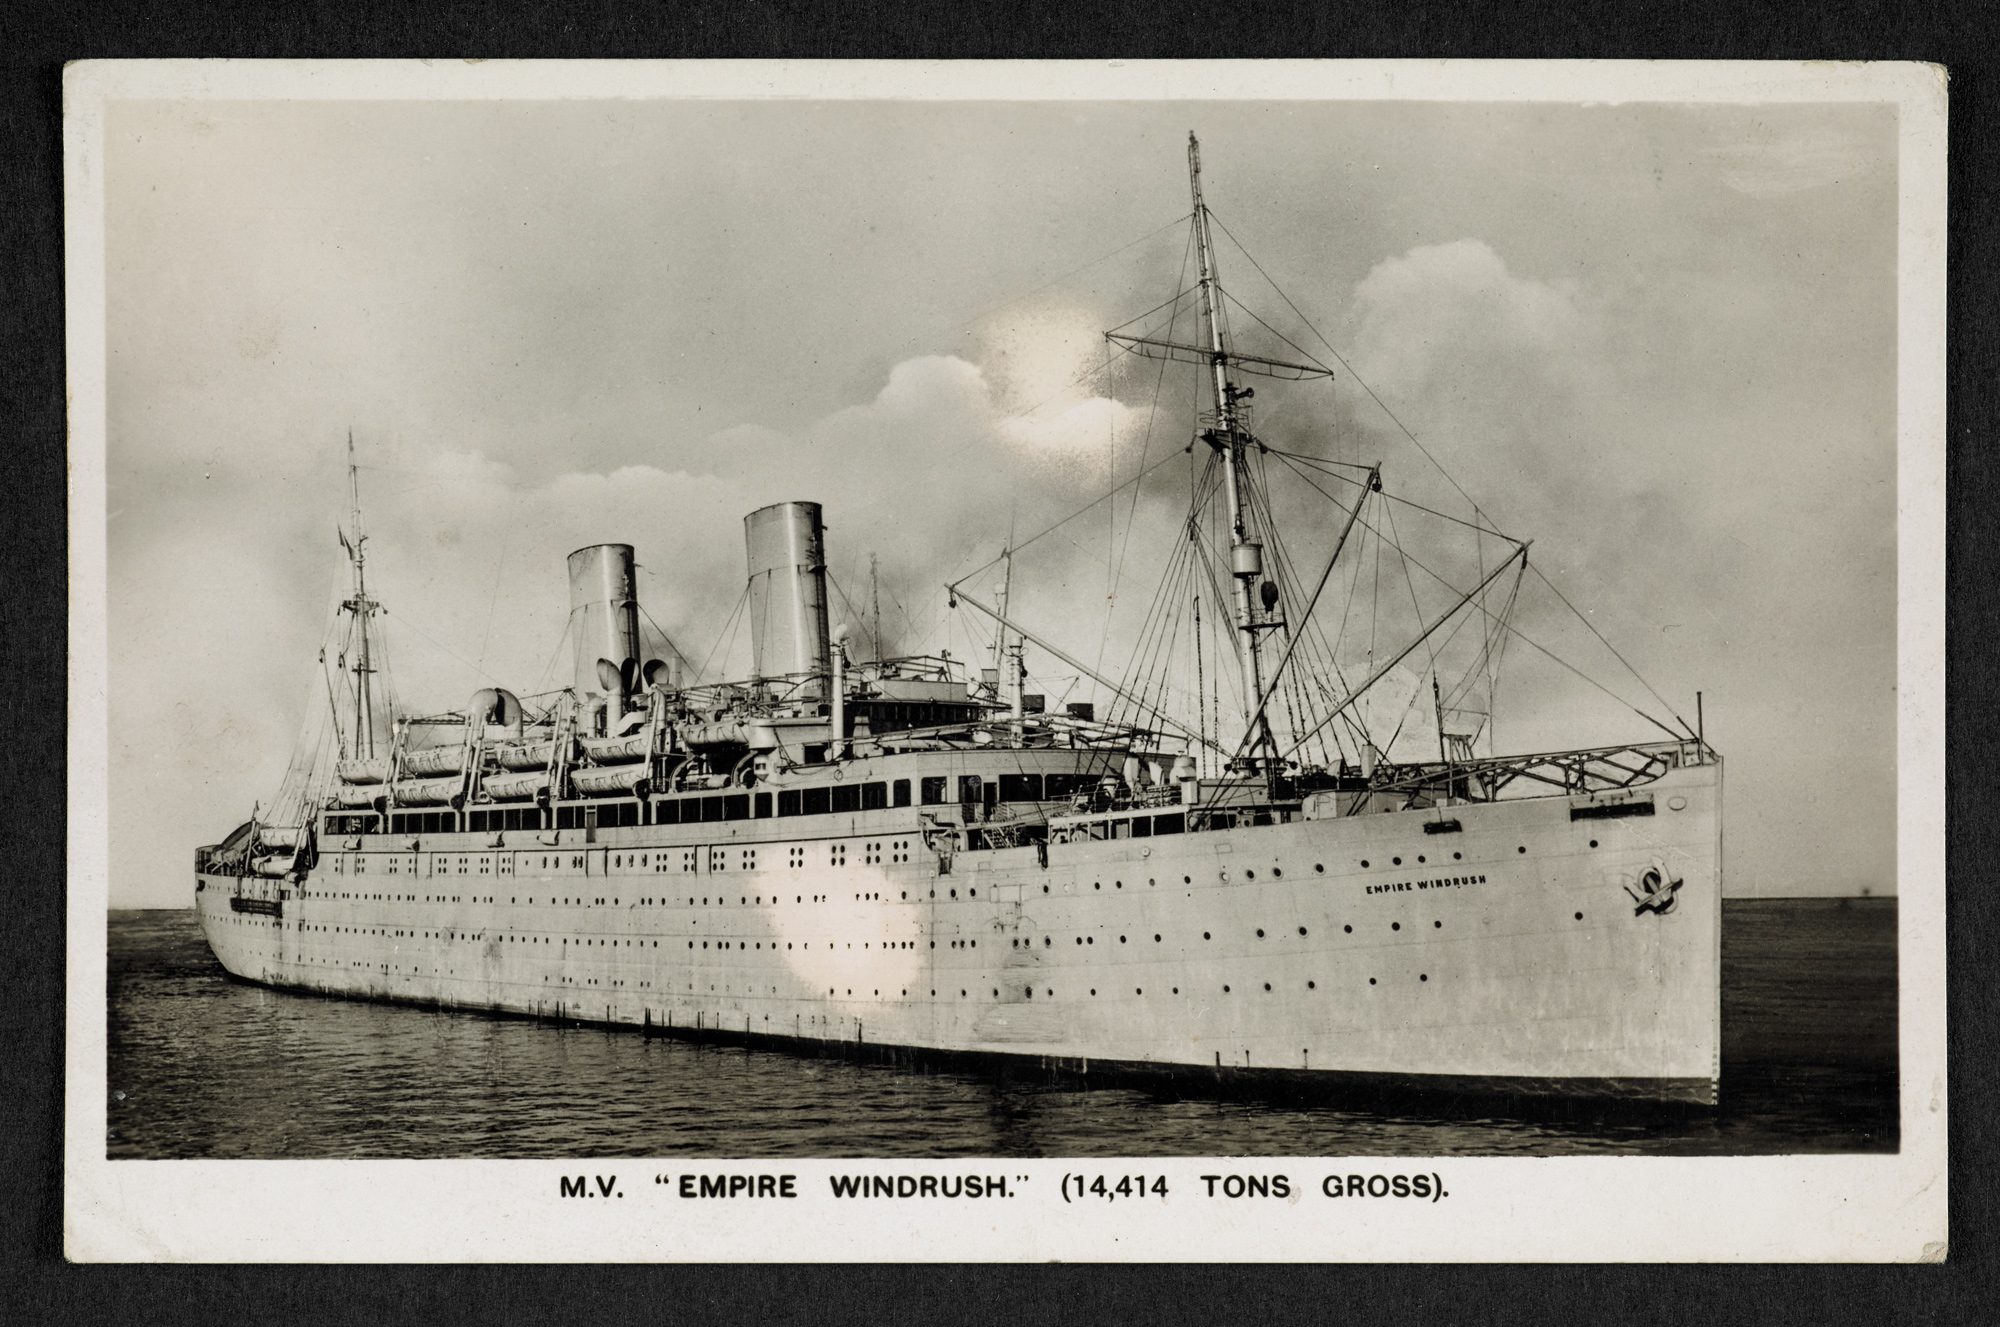 Postcard of Empire Windrush purchased on board ship by Winston Levy